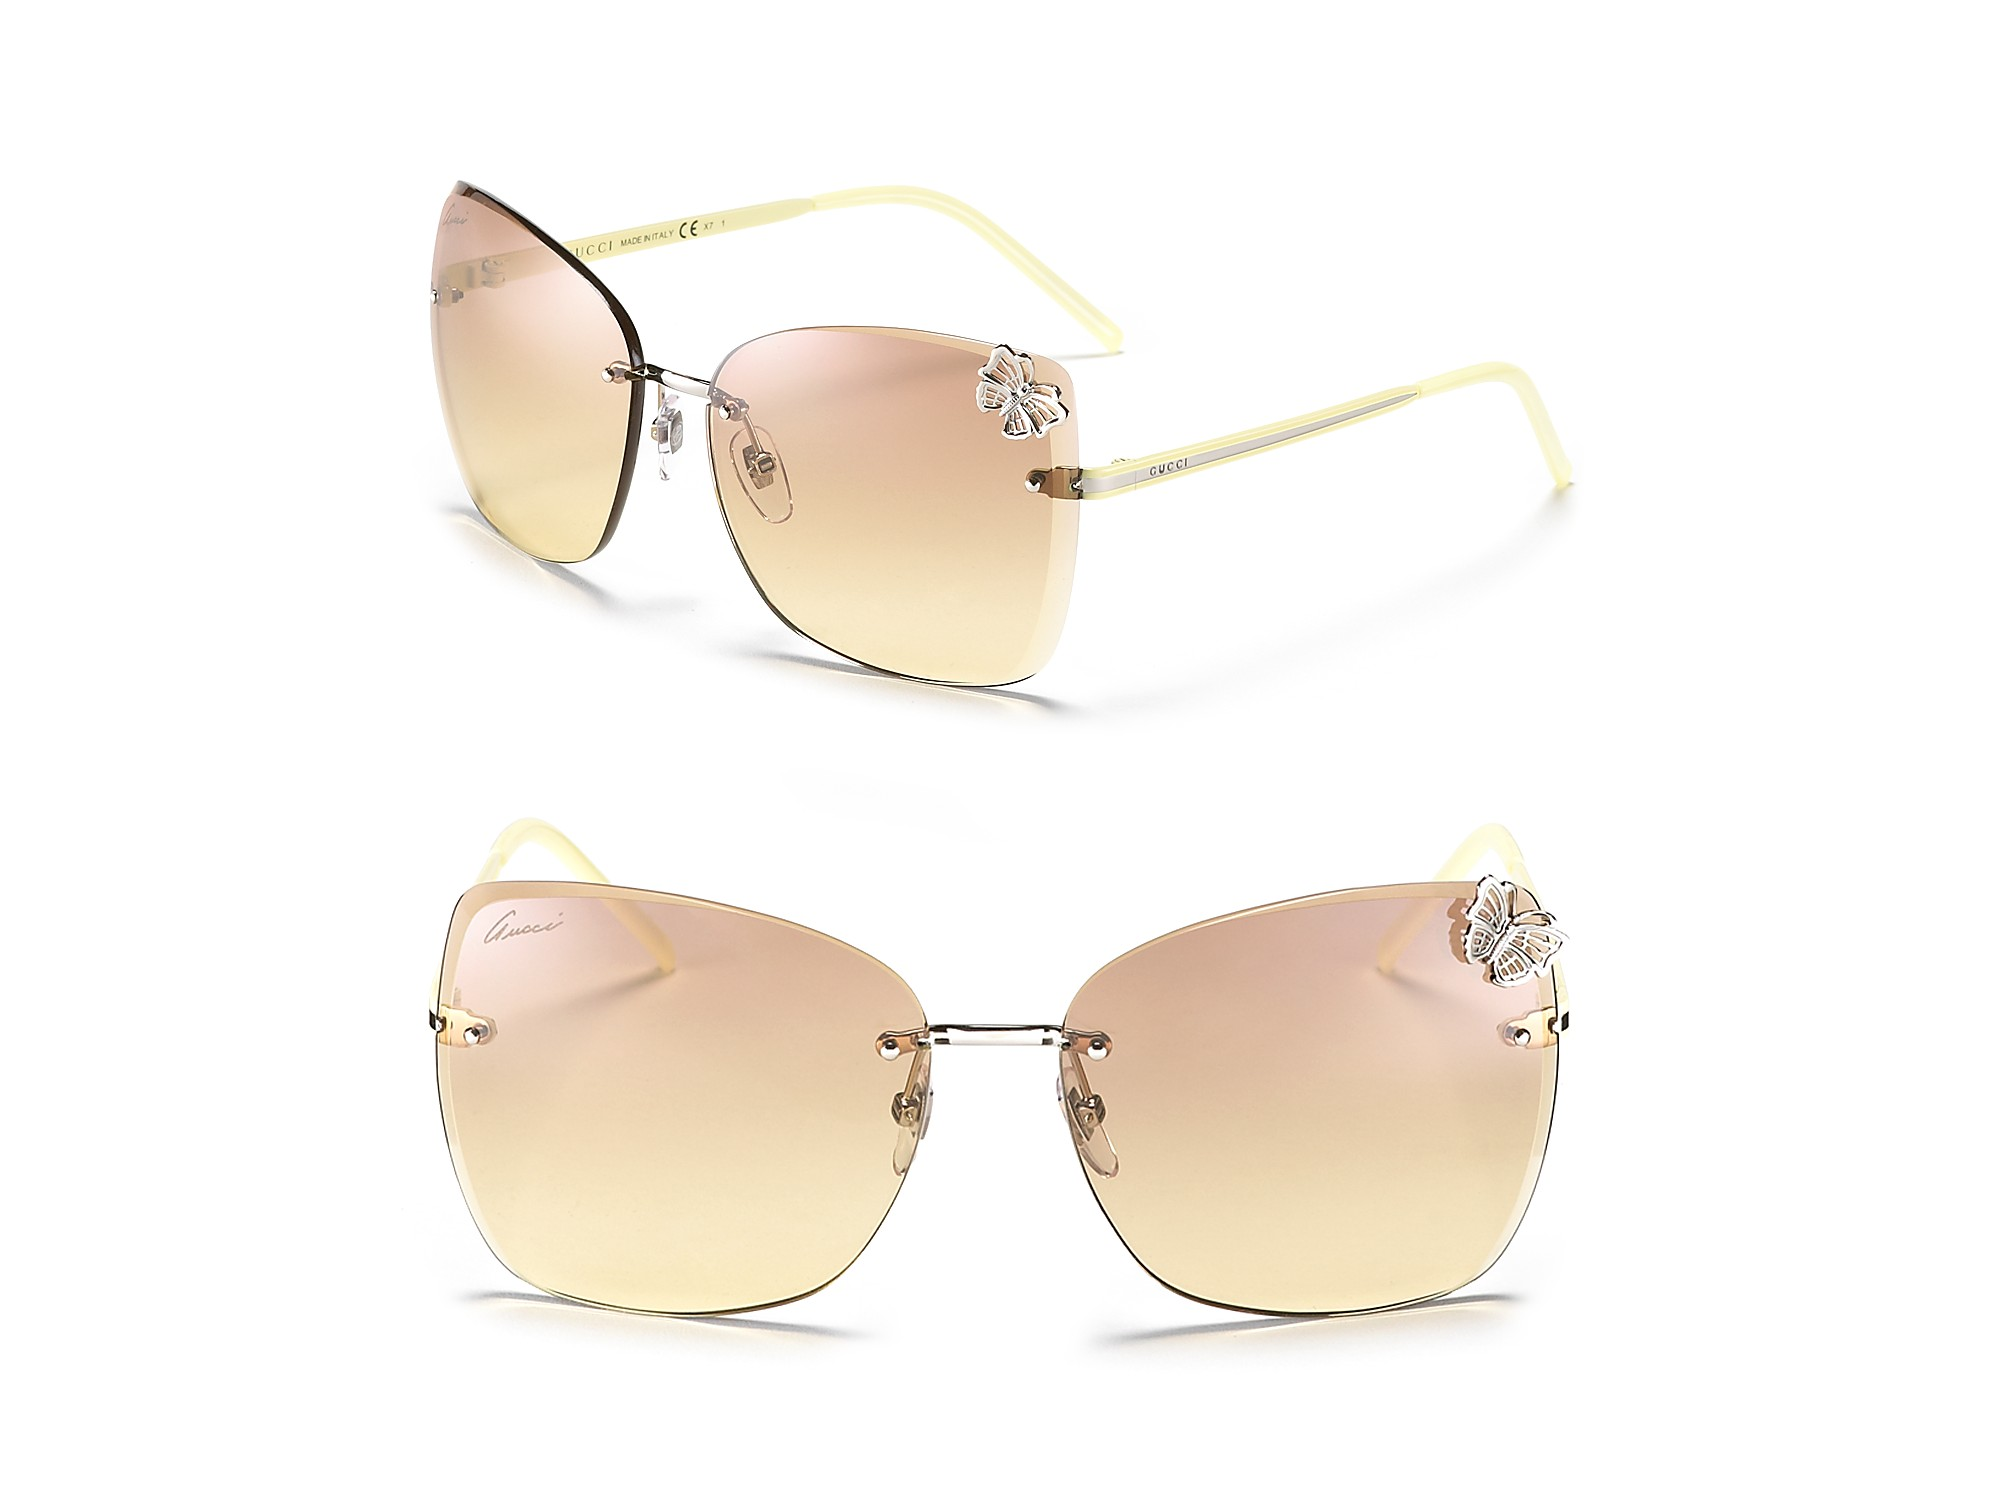 Rimless Butterfly Glasses : Gucci Oversized Rimless Butterfly Sunglasses in Beige ...